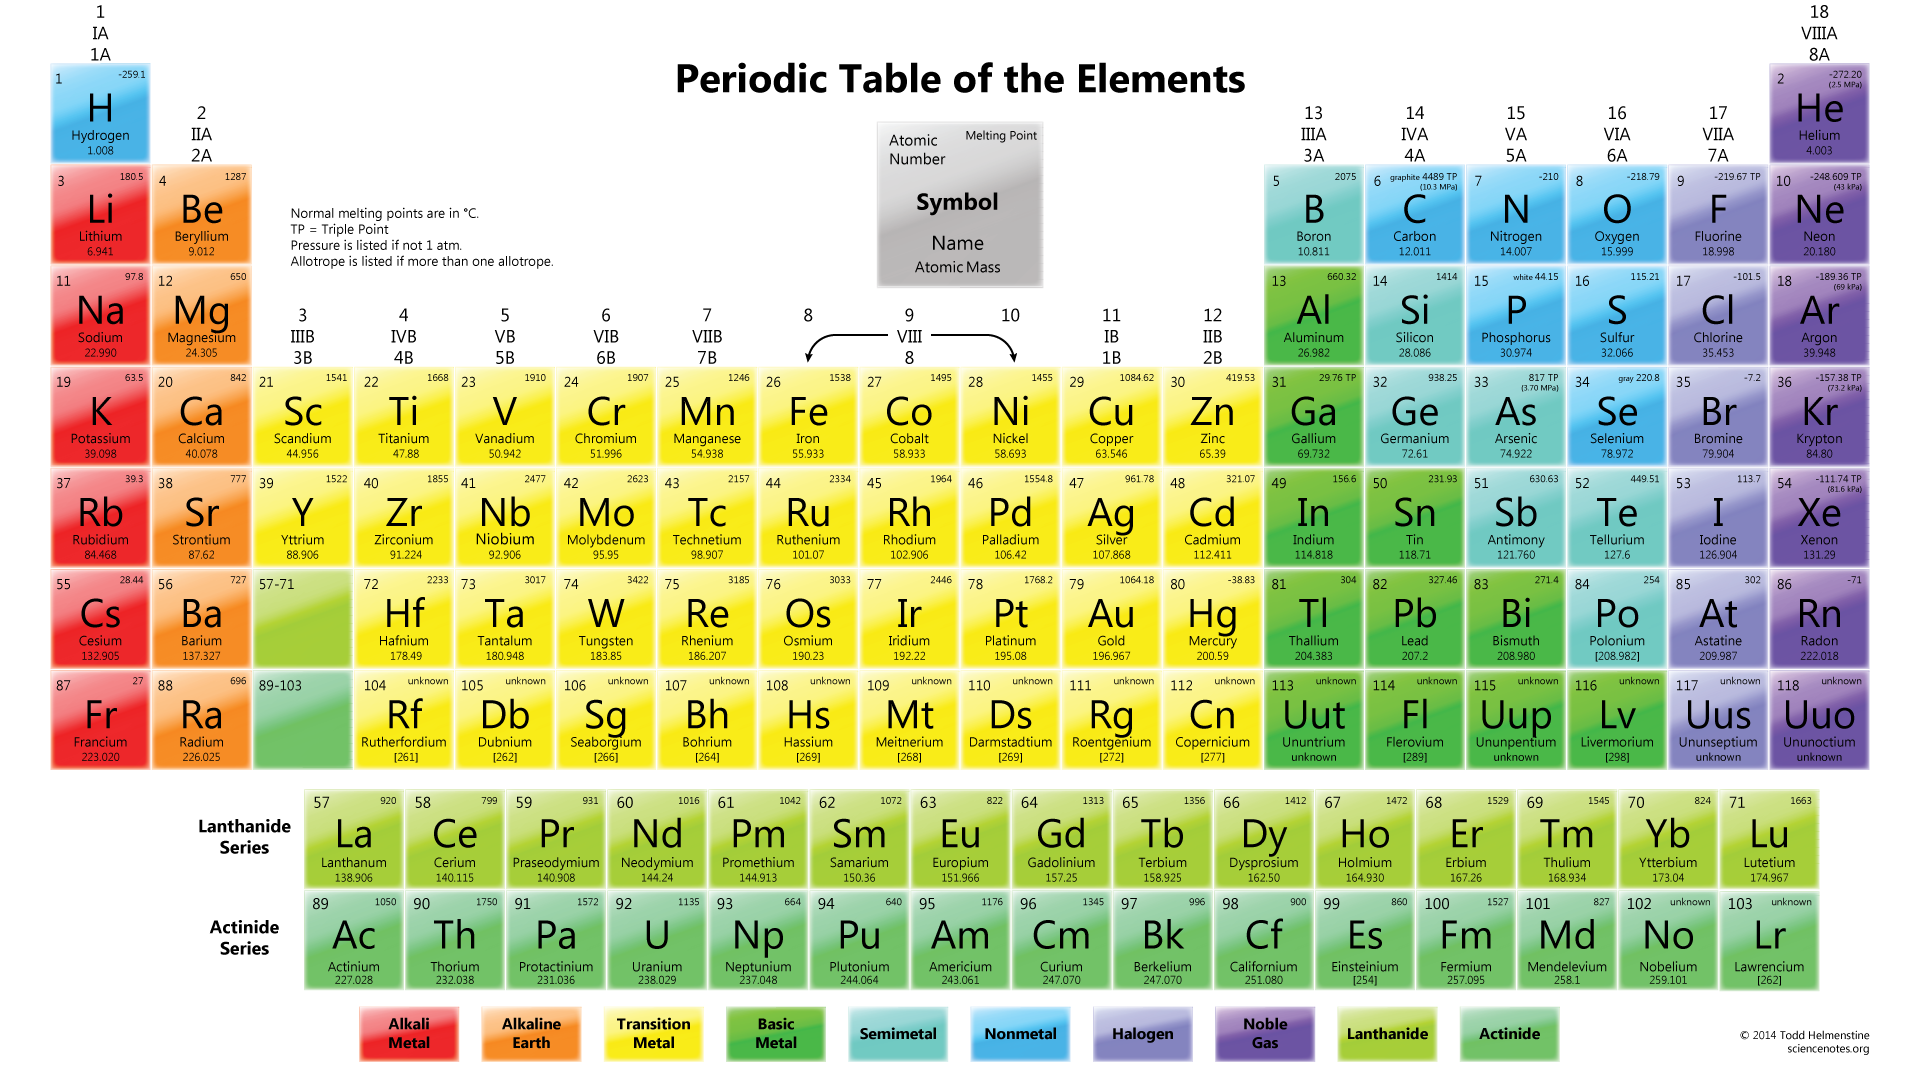 30 printable periodic tables for chemistry science notes and color periodic table wallpaper with element melting points gamestrikefo Gallery